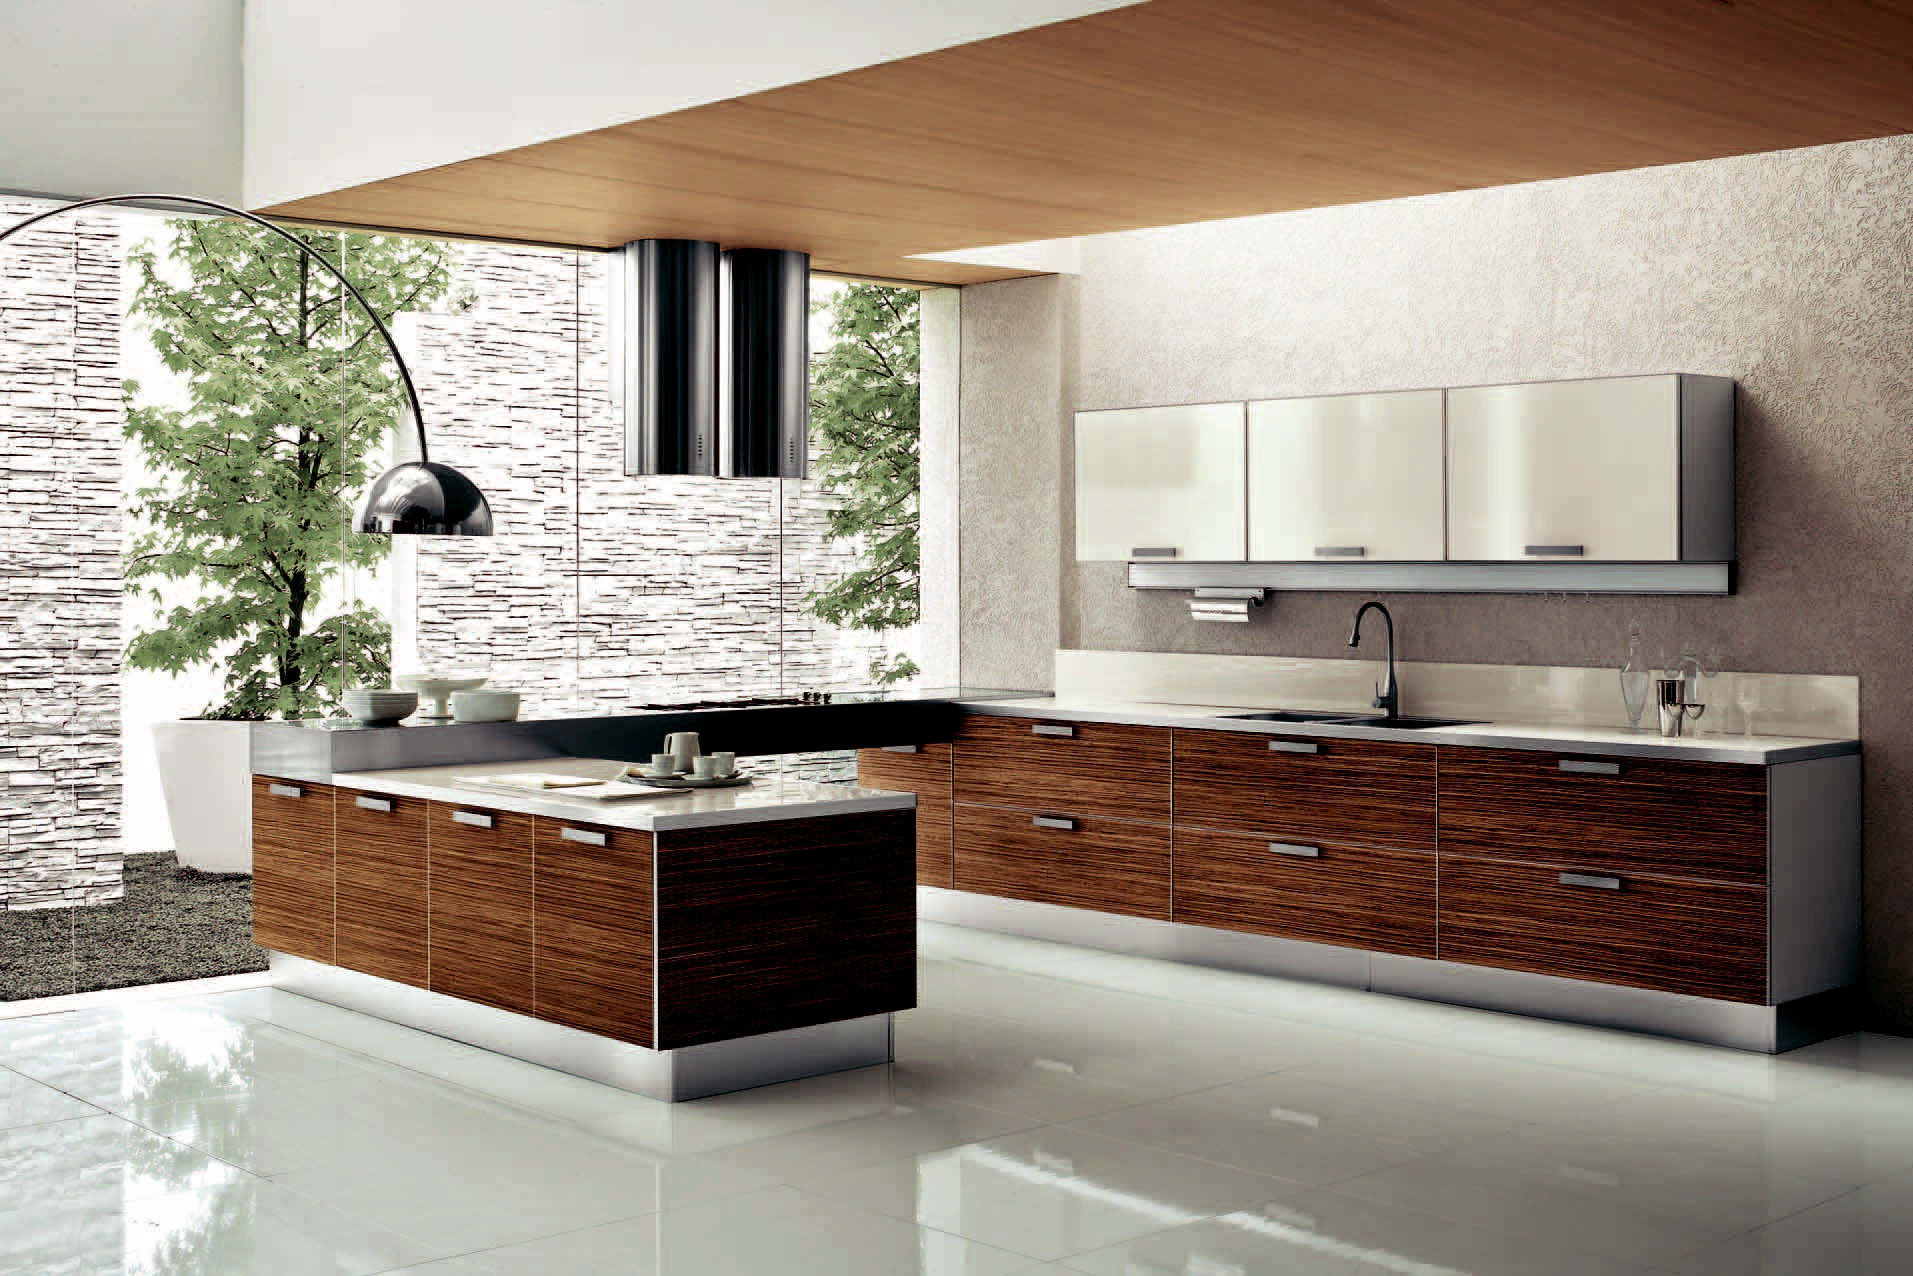 Beyond kitchens kitchen cupboards cape town kitchens cape town boksburg jhb - Modern kitchens pictures ...